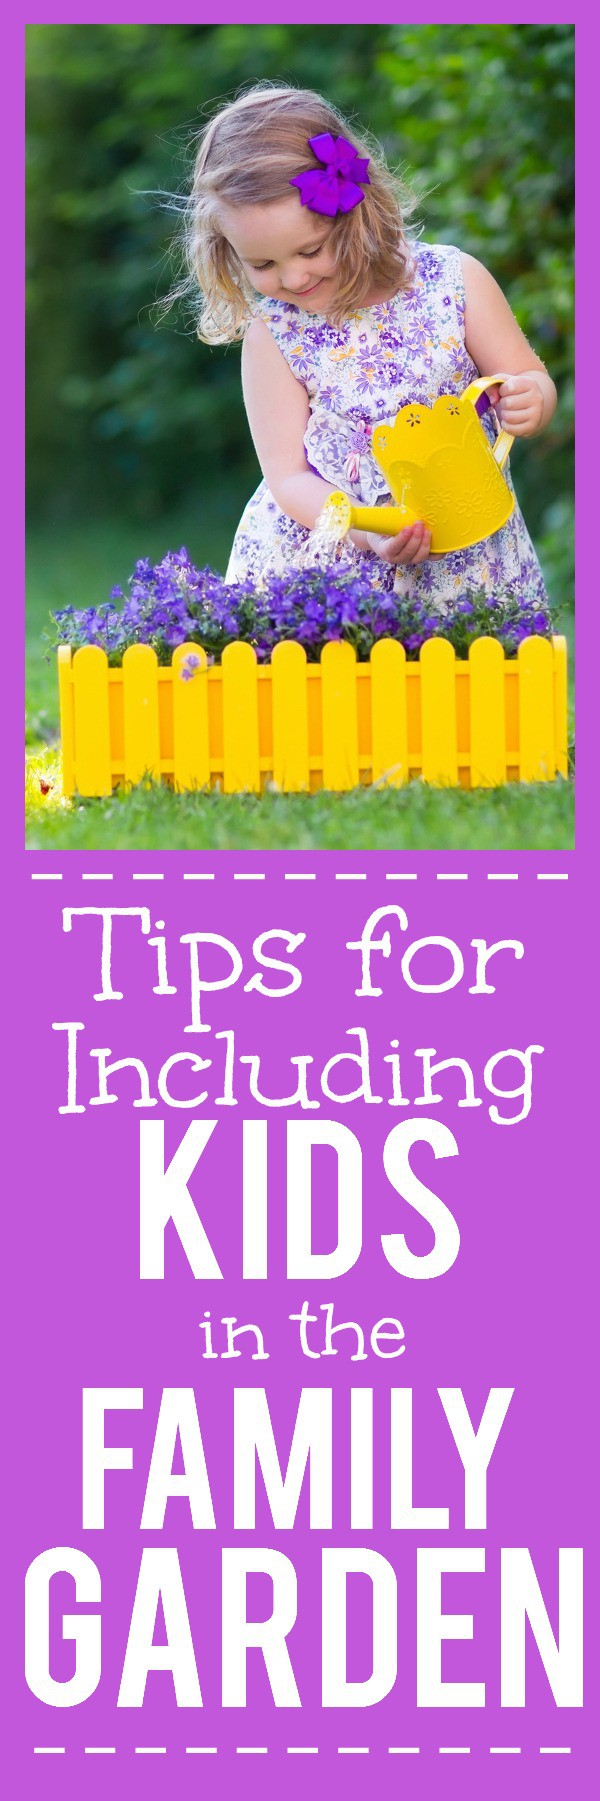 9 Tips for Including Kids in the Family Garden - Gardening isn't just for grown ups.  Get the kids involved in planning, planting, growing, and harvesting with these 9 Tips for Including Kids in the Family Garden. This makes a great Spring and Summer kids activity and will keep them busy when they're out of school!